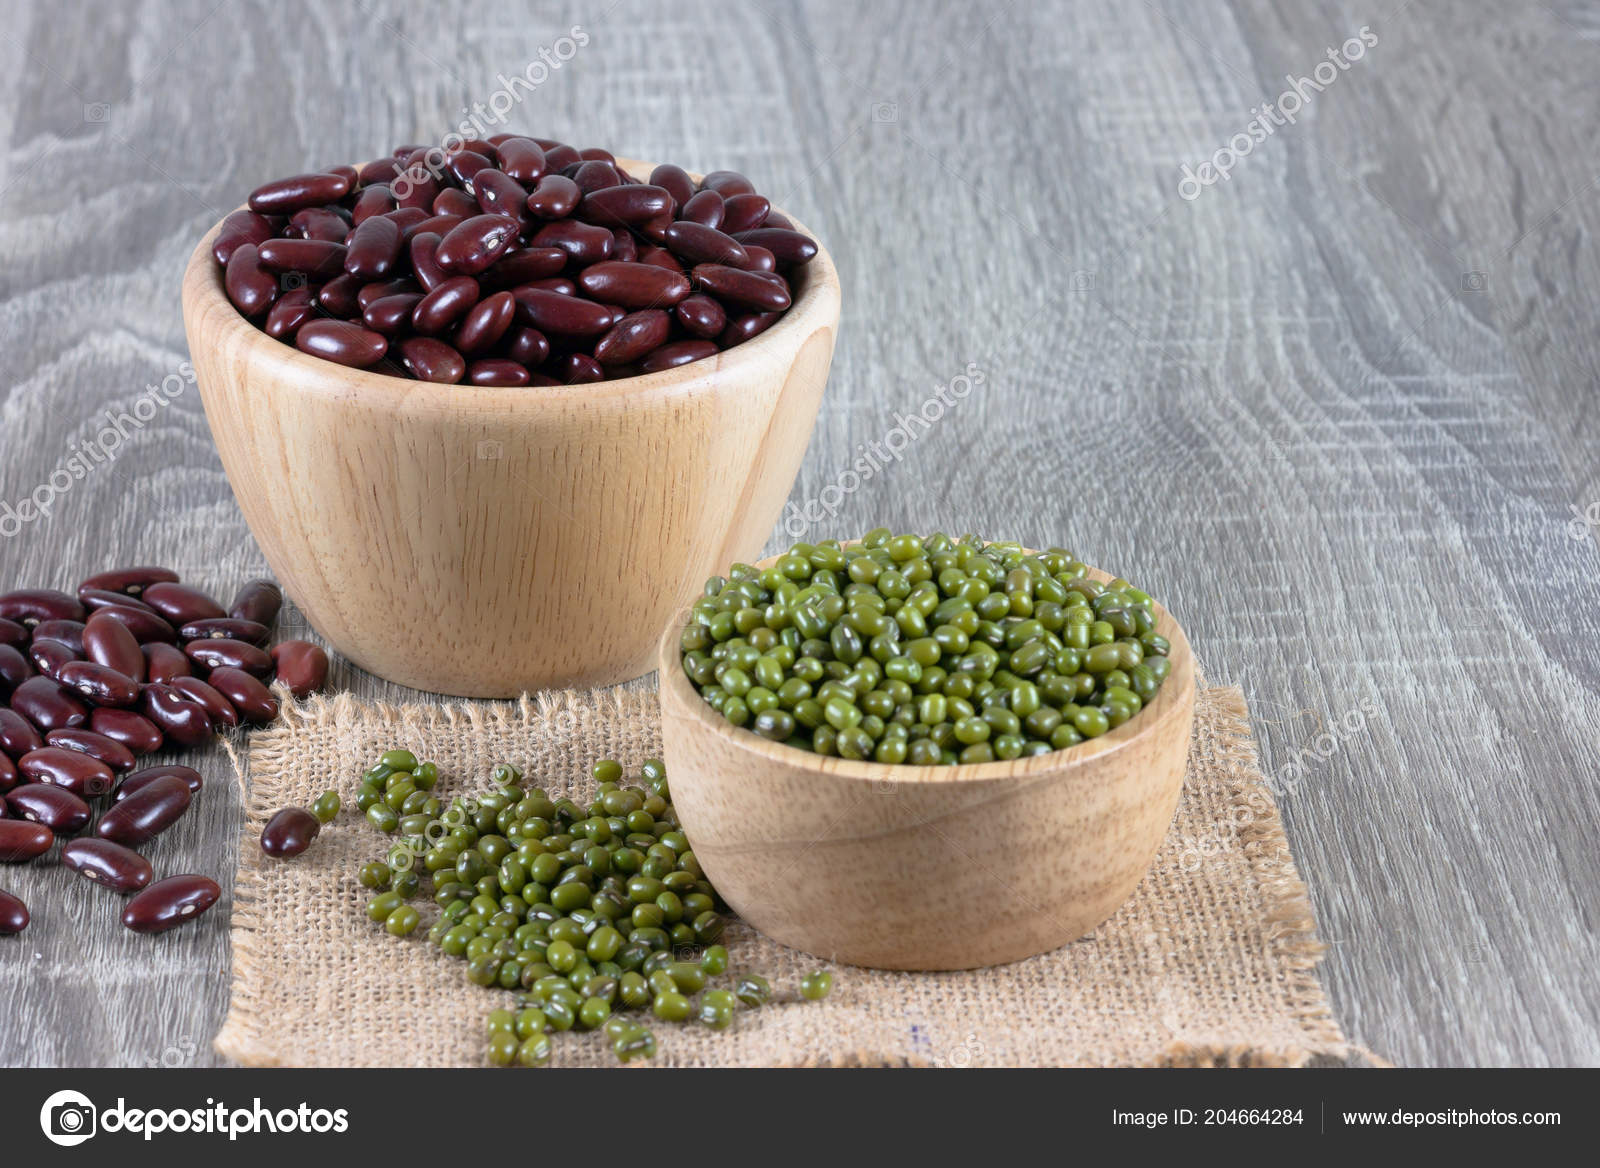 kidney bean table semi circle school mung bean red kidney bowl place wooden table copy stock photo